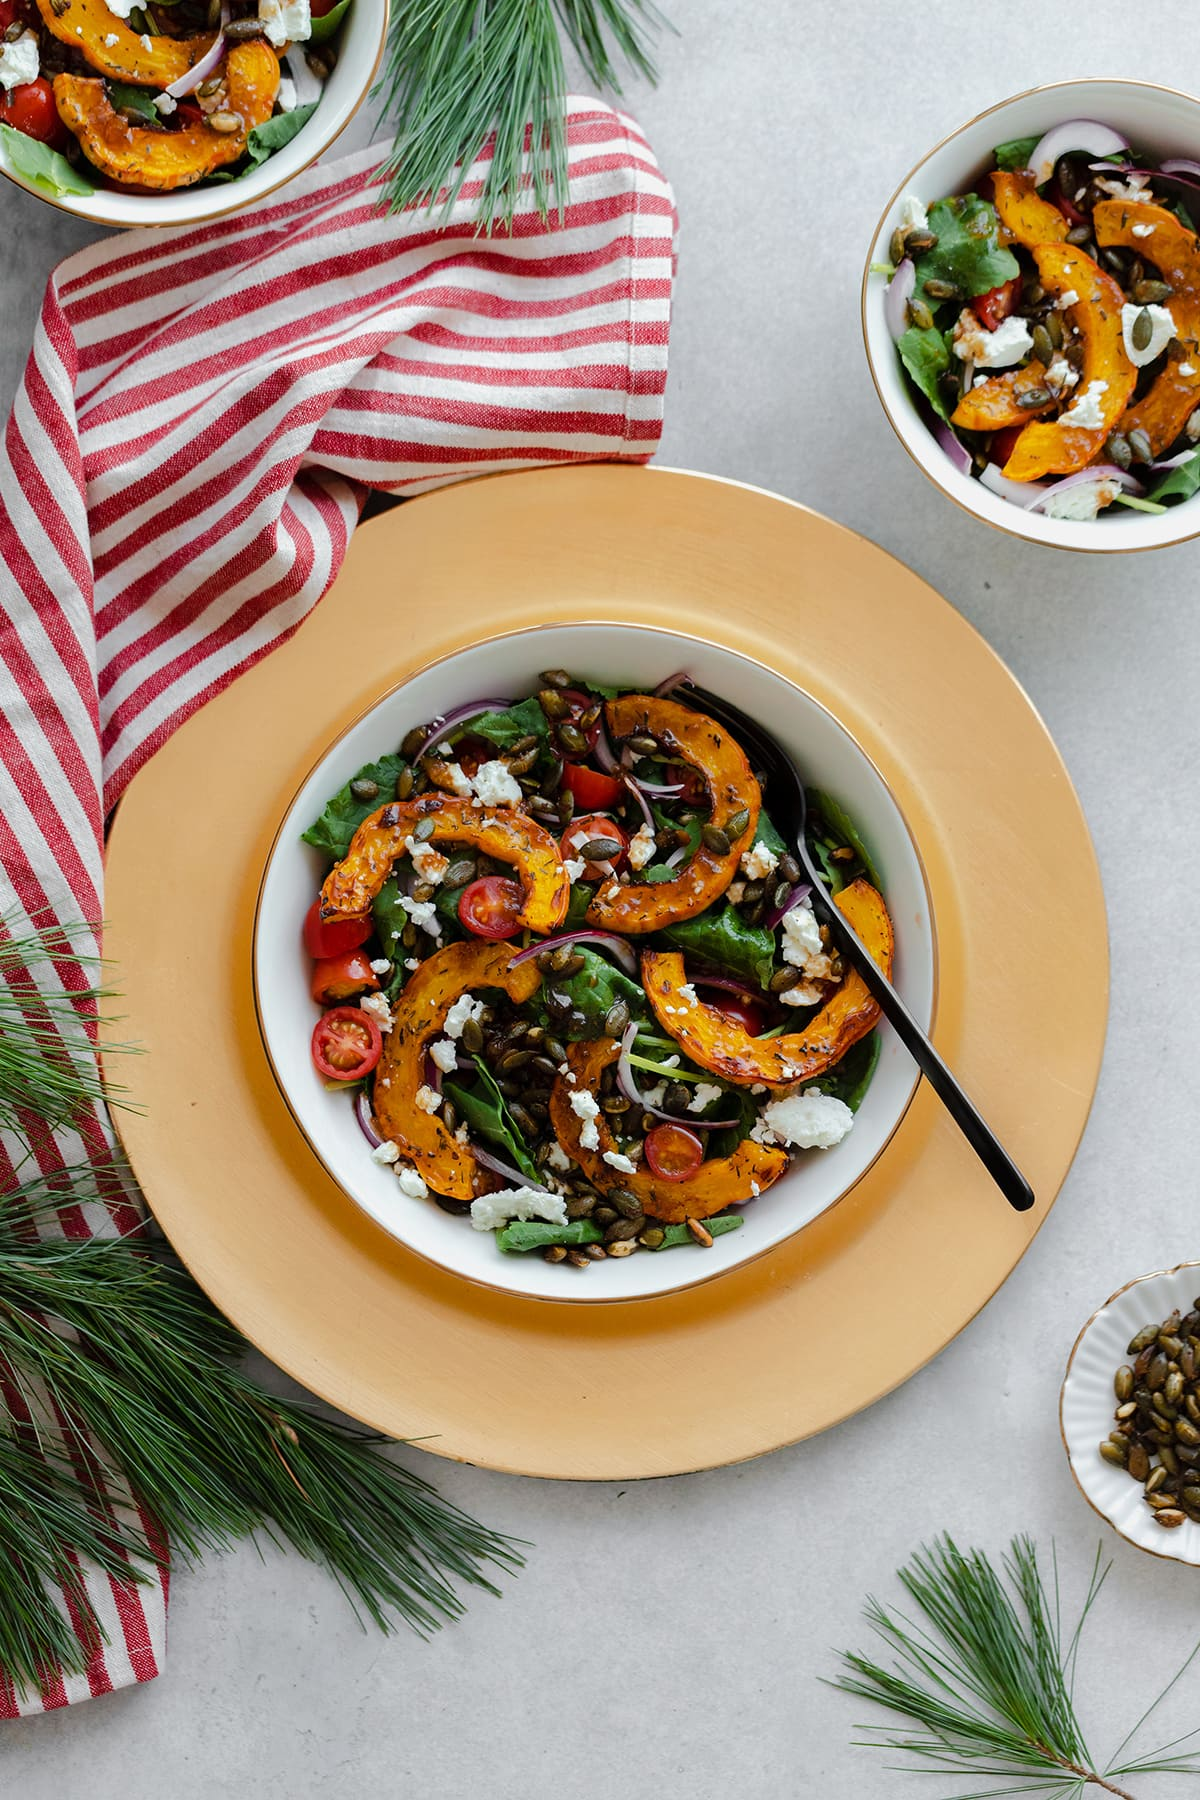 A photo of delicata squash salad in a white bowl with a black fork. Bowl on a decorative gold plate with a red and white tea towel on the left and a decorative some decorative pine branches.